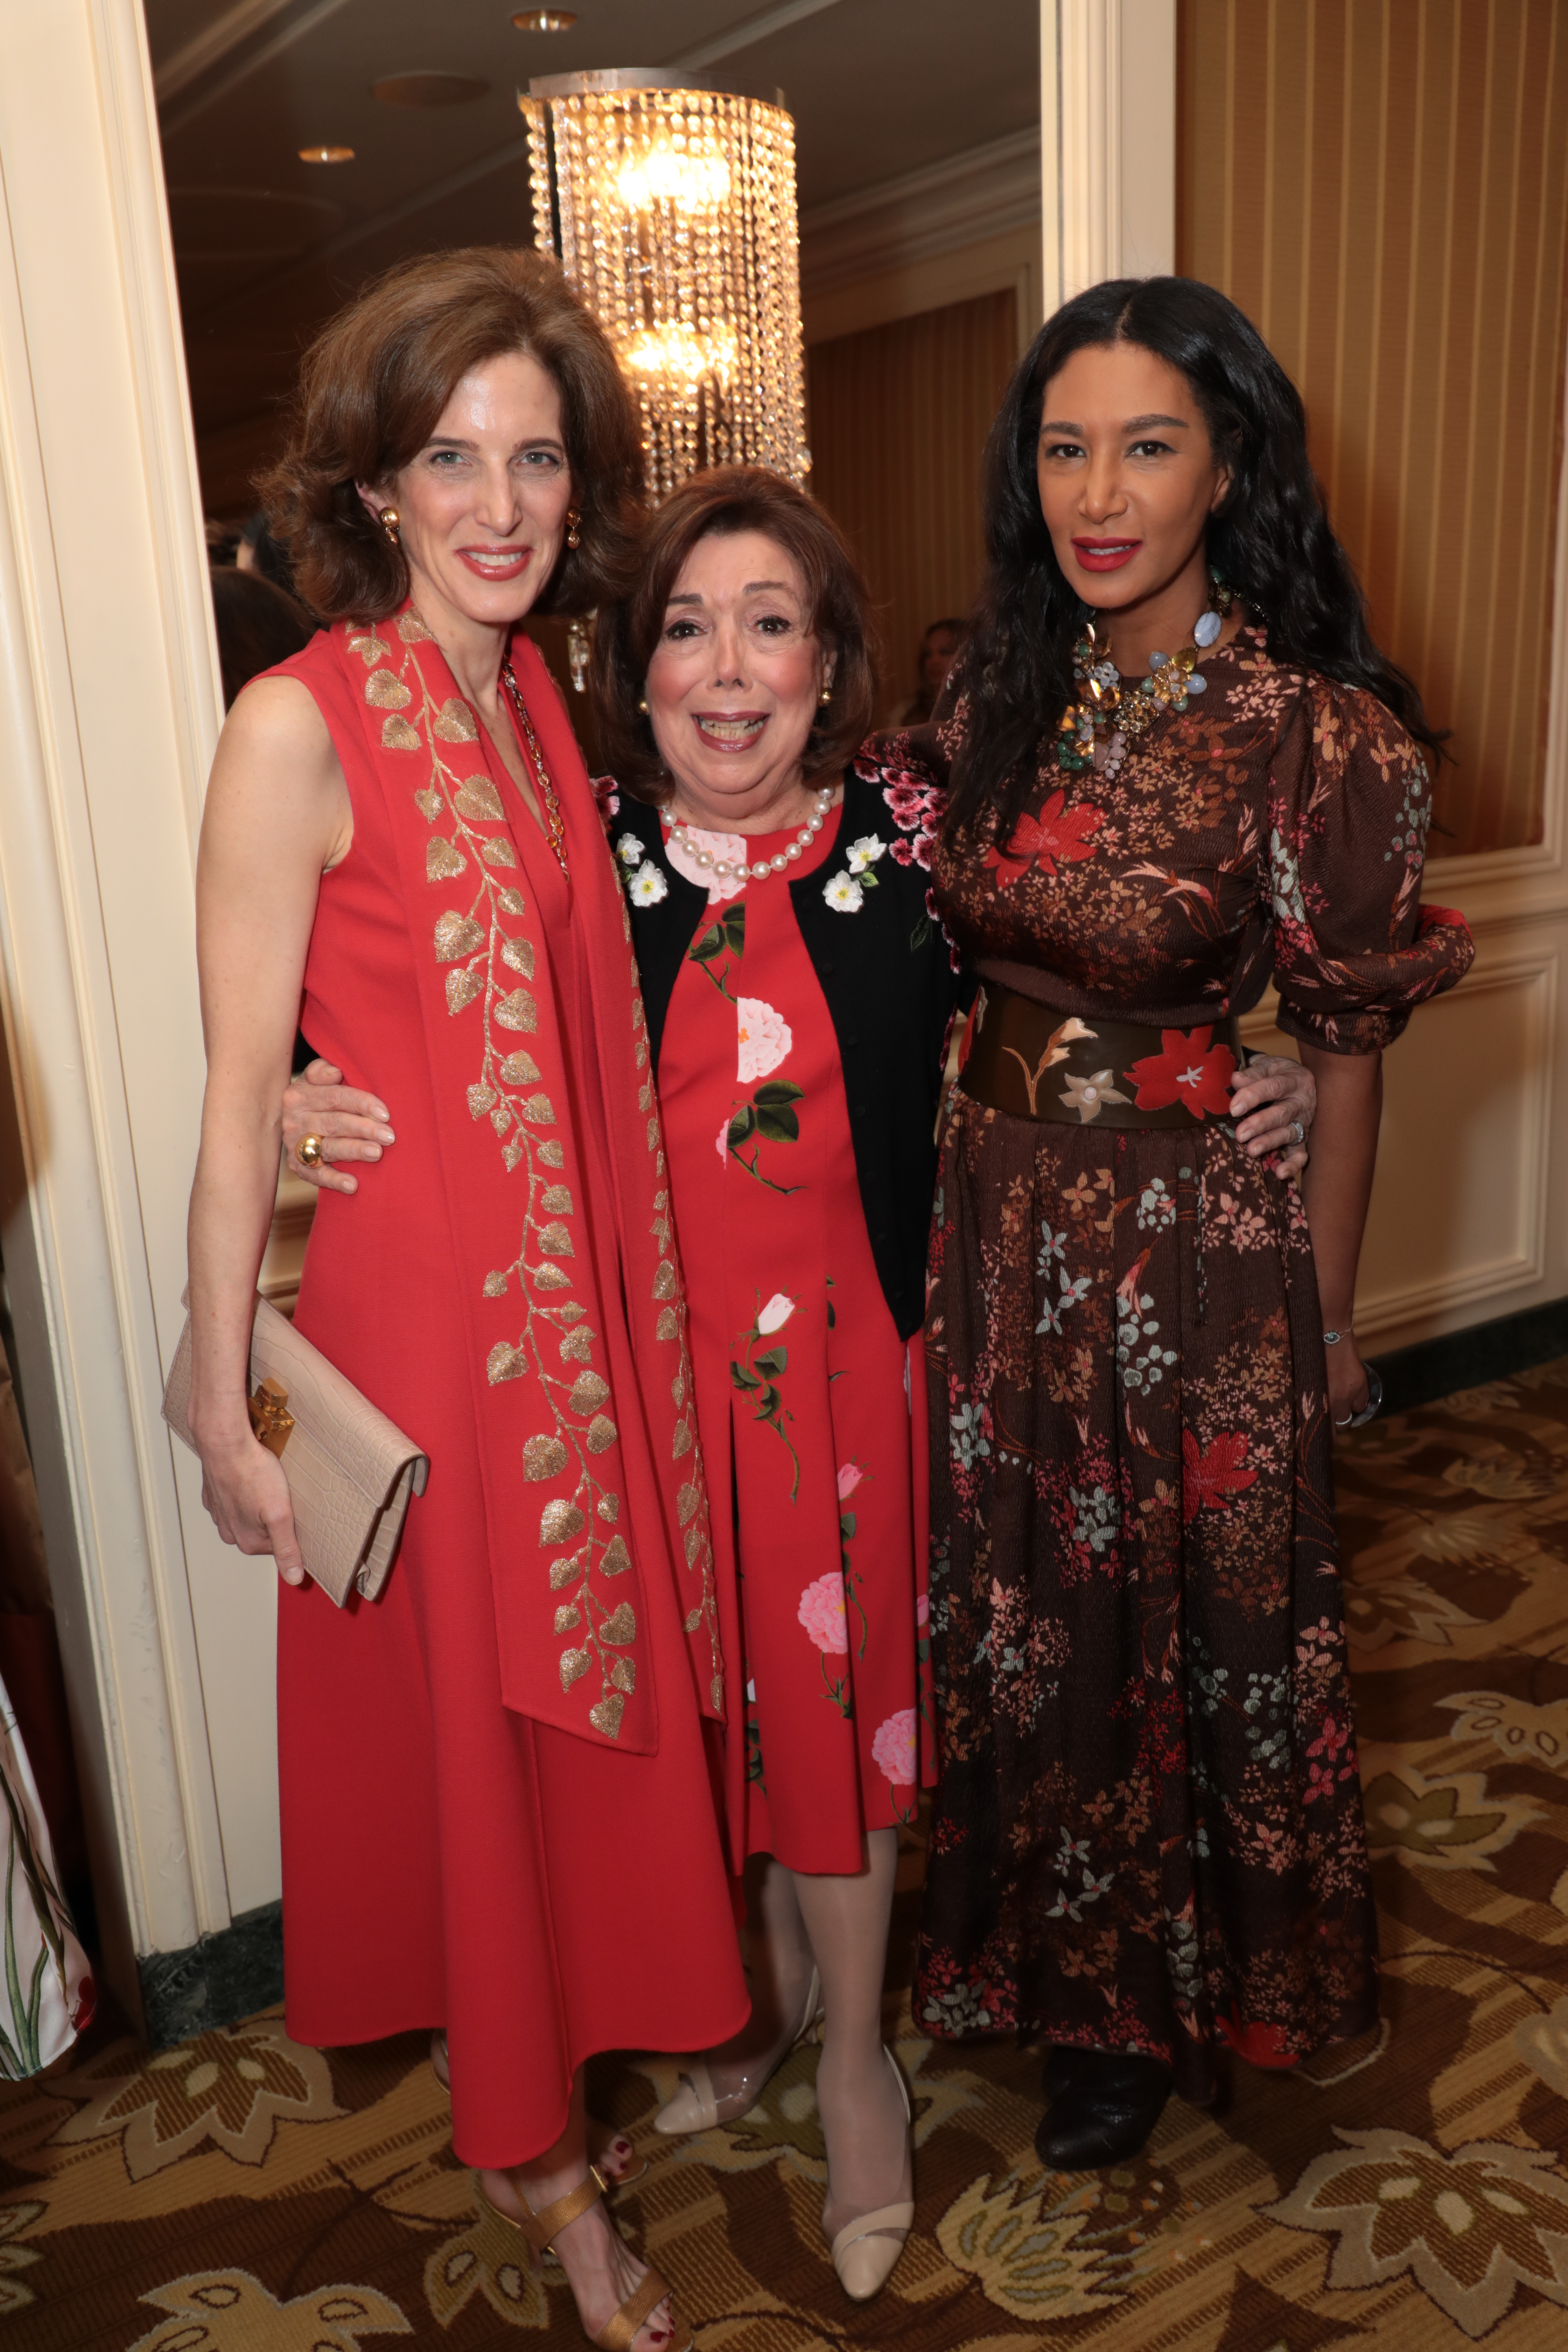 Eliza Reed Bolen, Anne Johnson and Gelila Puck attend as The Colleagues host their 31st annual Spring Luncheon and Oscar de la Renta fashion presentation at the Beverly Wilshire Hotel on Tuesday, April 9, 2019 in Beverly Hills, CA (photo: Alex J. Berliner/ABImages)